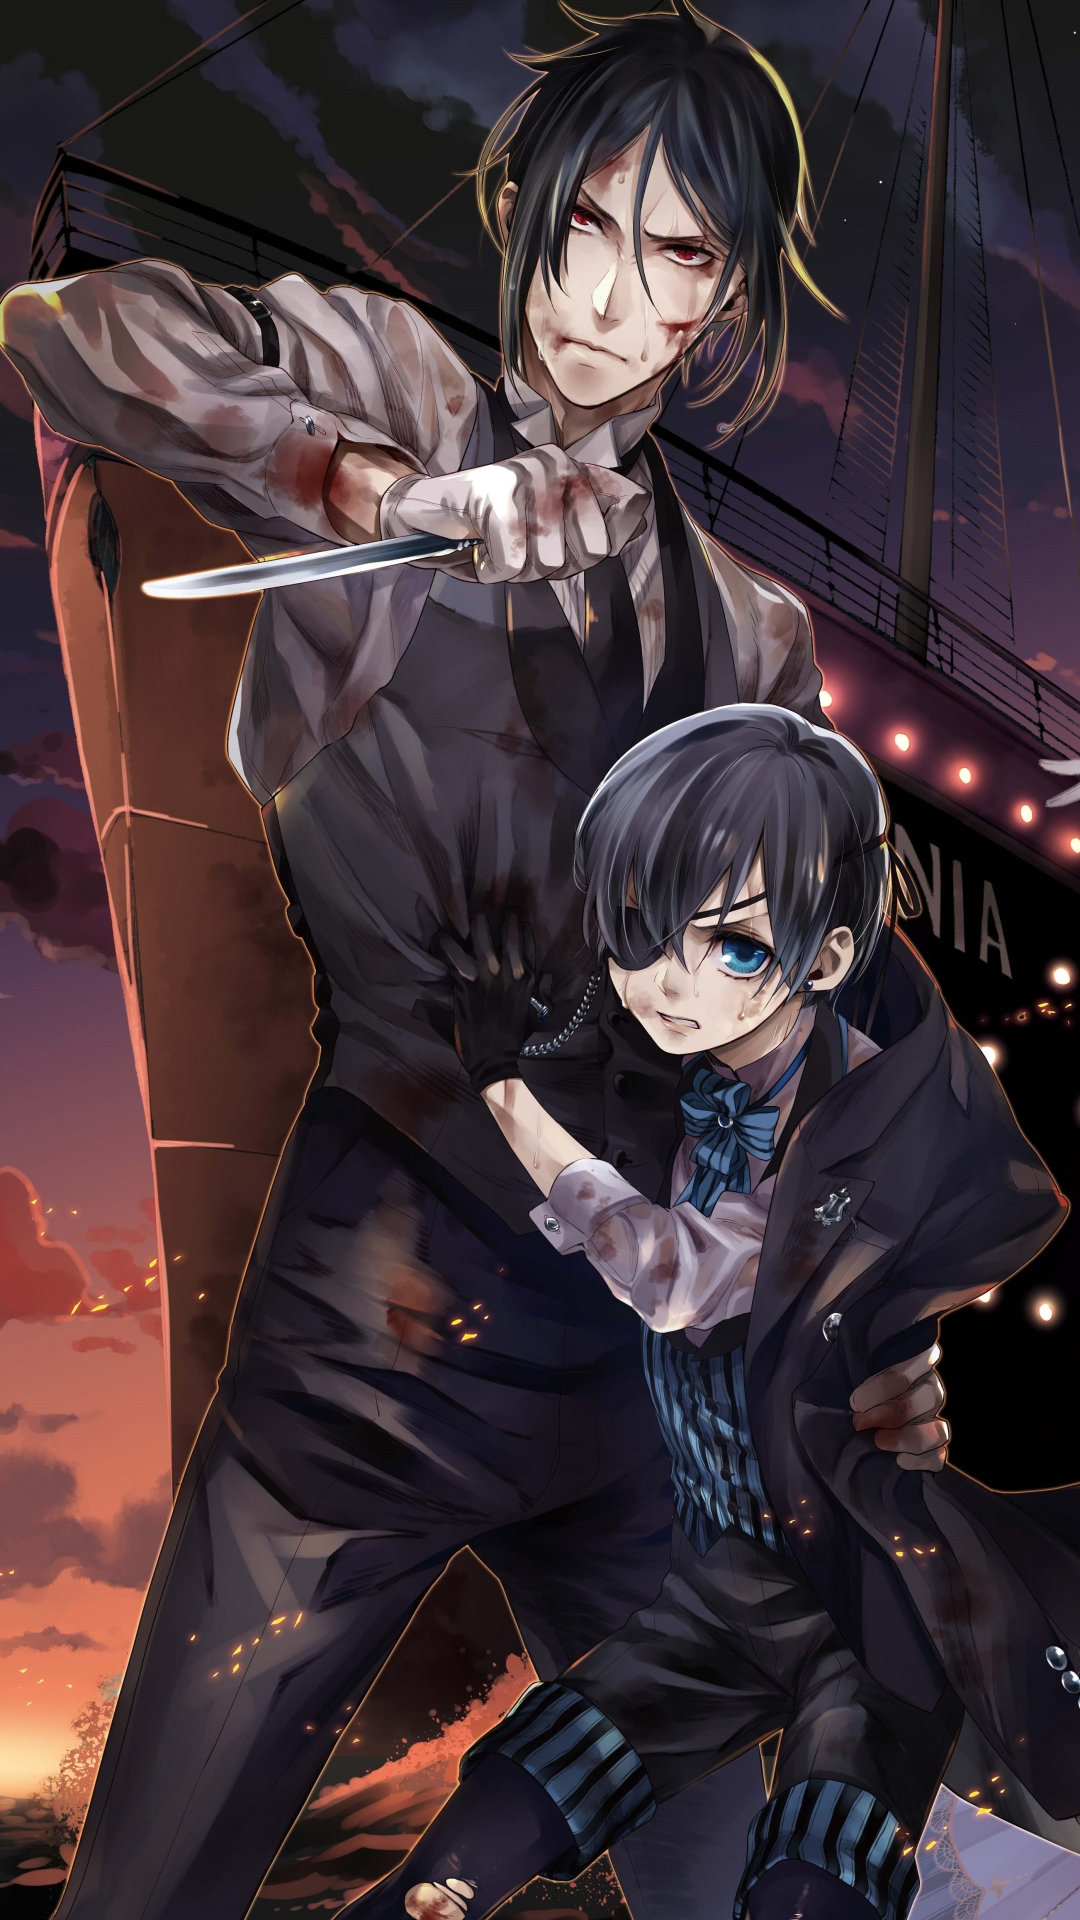 Anime/Black Butler (1080x1920) Wallpaper ID: 706687 - Mobile Abyss